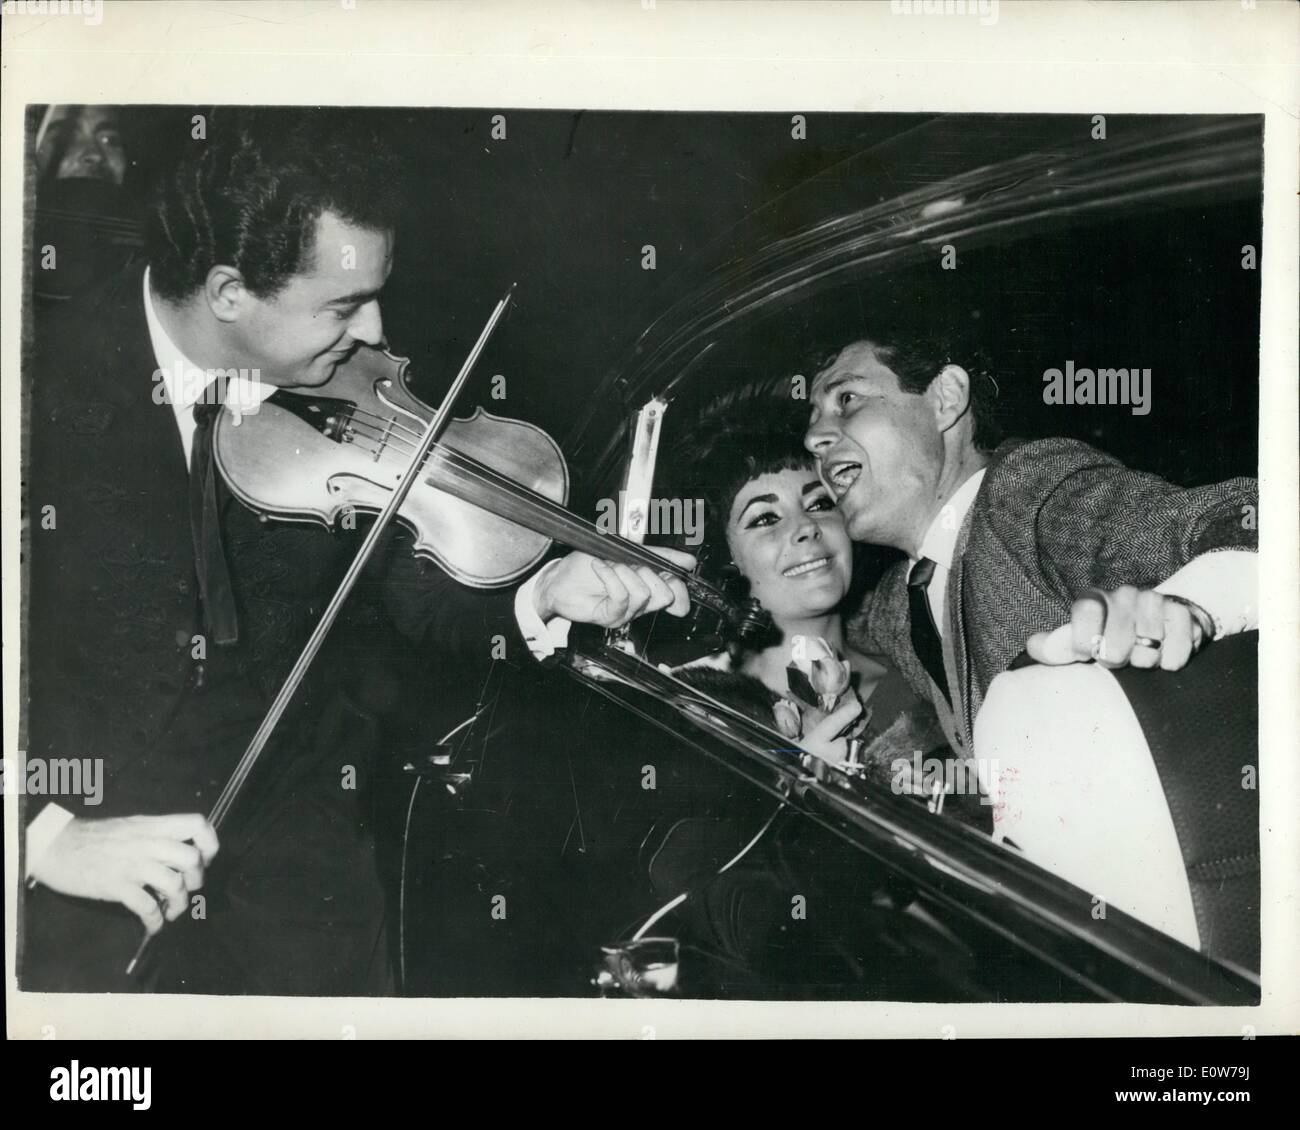 Oct. 10, 1961 - Eddie Fisher Serenades Liz Taylor in Rome with Help of a Violinist. Eddie Fisher sand a serenade to his wife, actress Elizabeth Taylor, now in Rome for the filming of Cleopatra, recently as they were driving back from a restaurant in the Via Veneto, as he spotted a street violinist who helped to land the right atmosphere. Photo Shows: Fisher singing to Taylor, seated in their car. - Stock Image